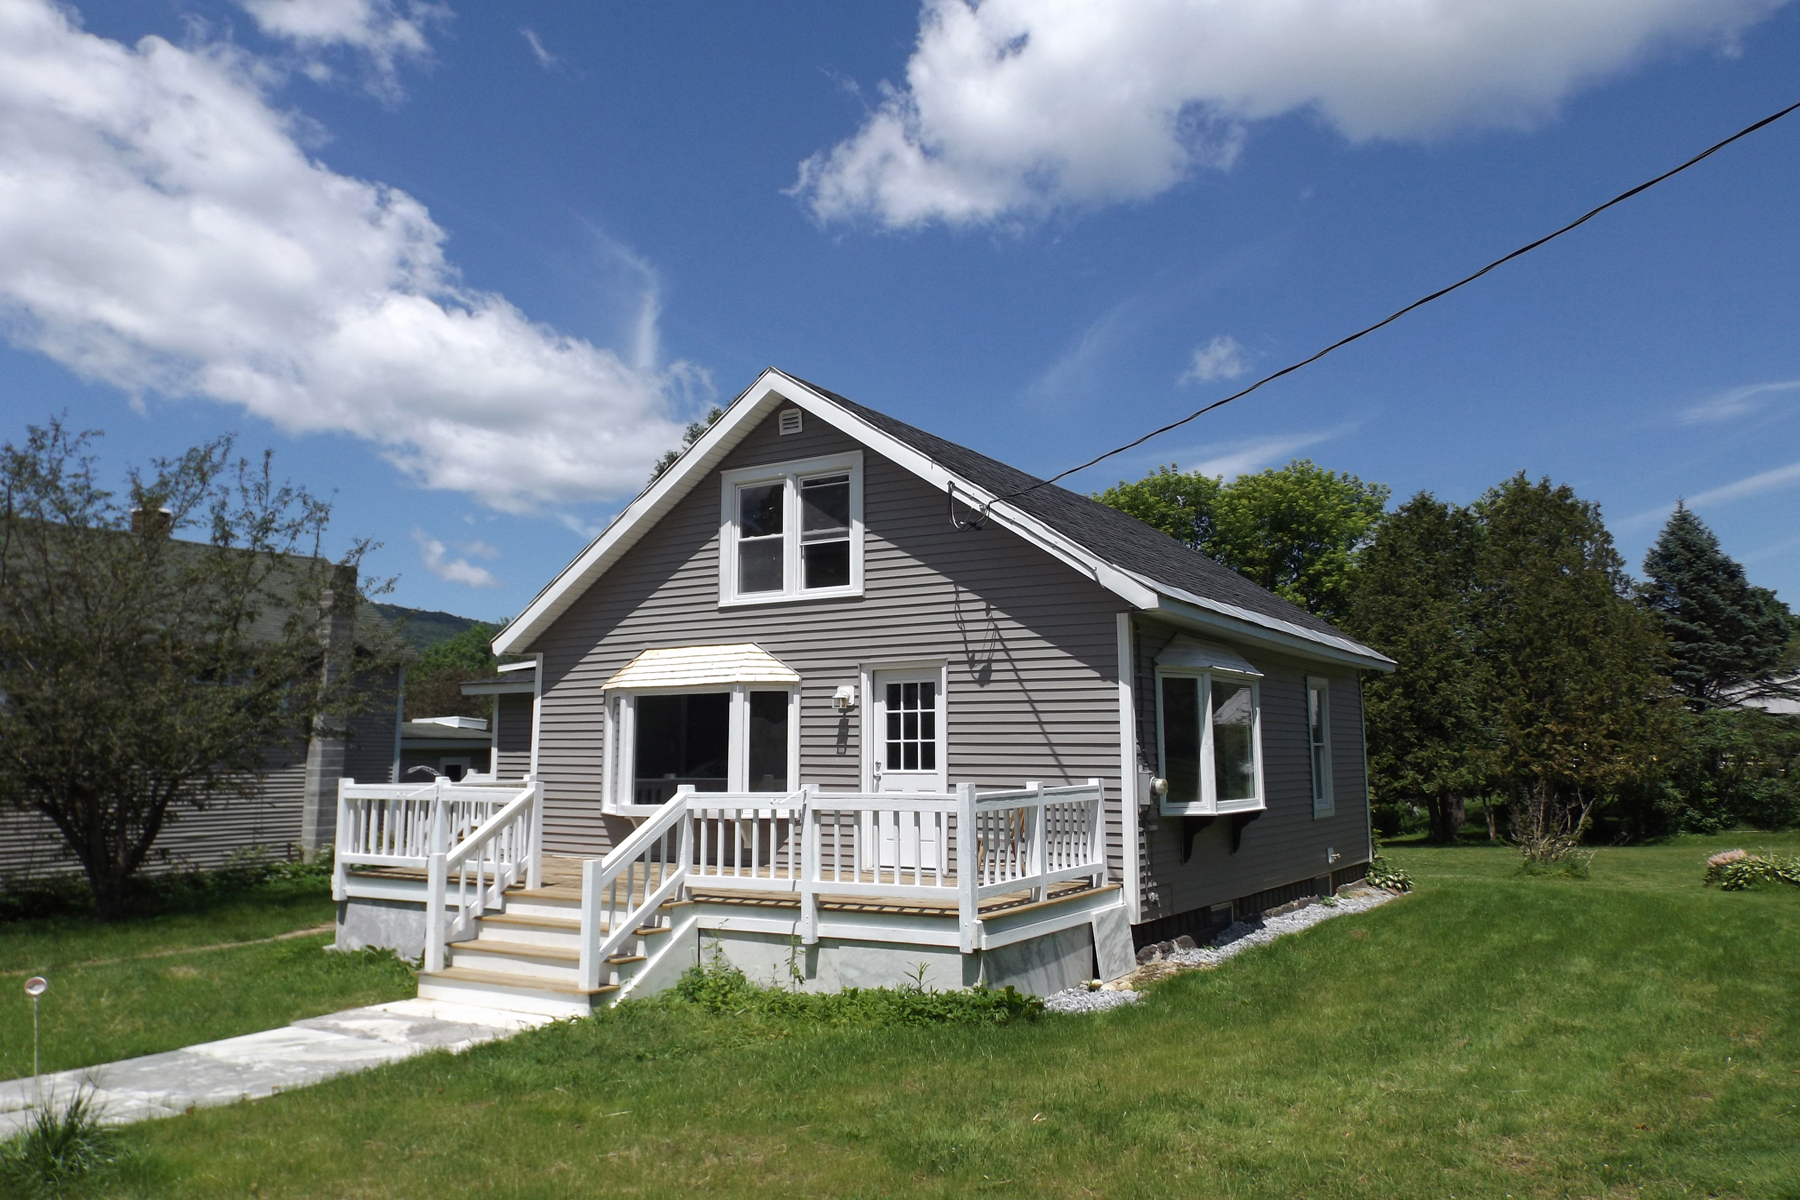 Single Family Homes for Sale at REMODELED WALLINGFORD BUNGALOW 109 Meacham St Wallingford, Vermont 05773 United States